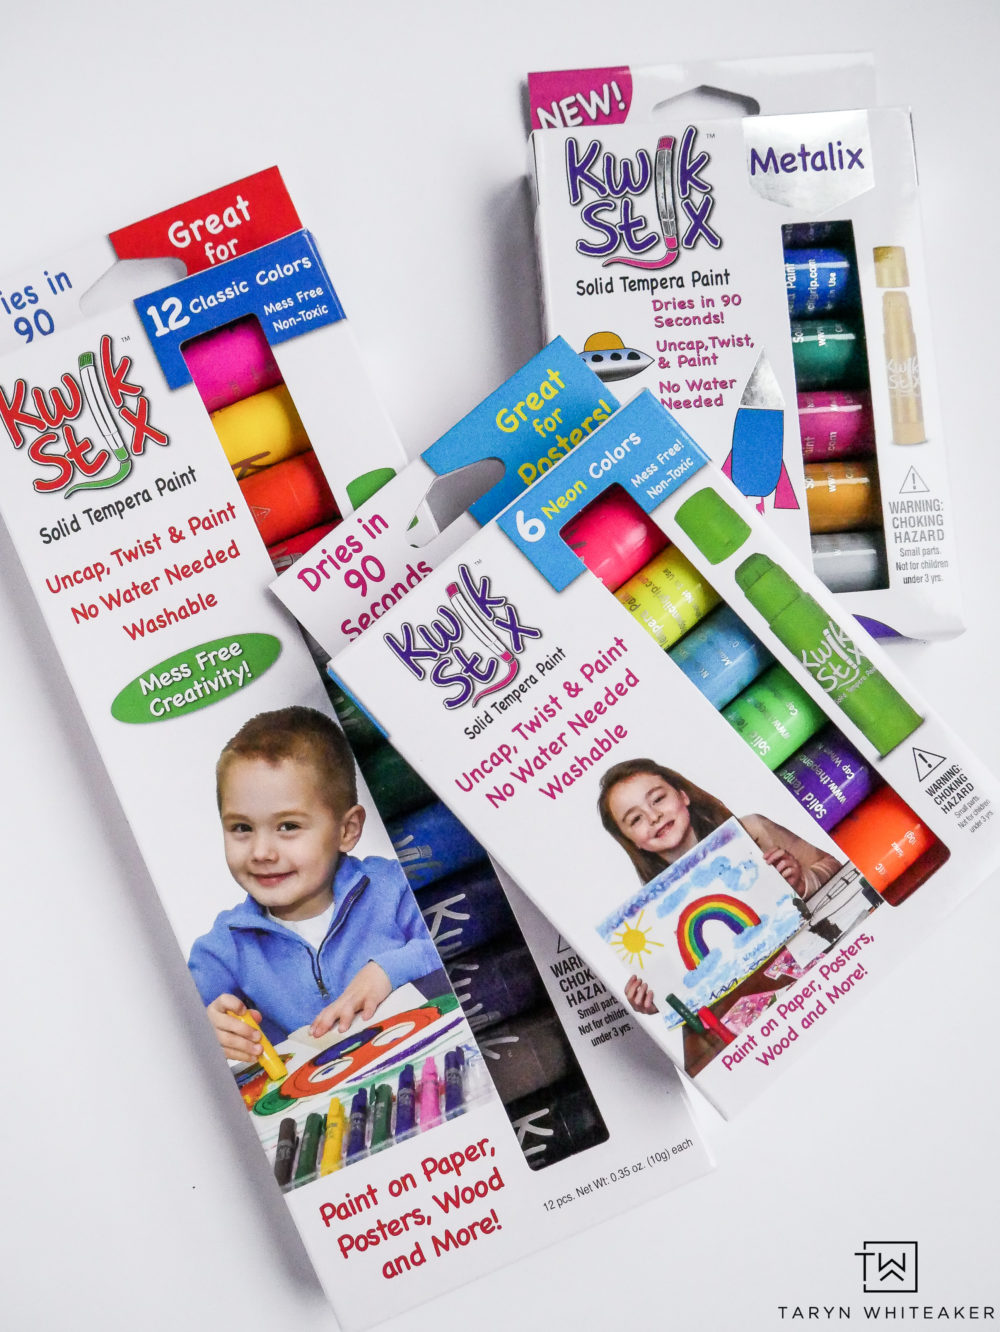 Kwik Stix Paint found at Michaels! Love how this paint dries in 90 seconds!